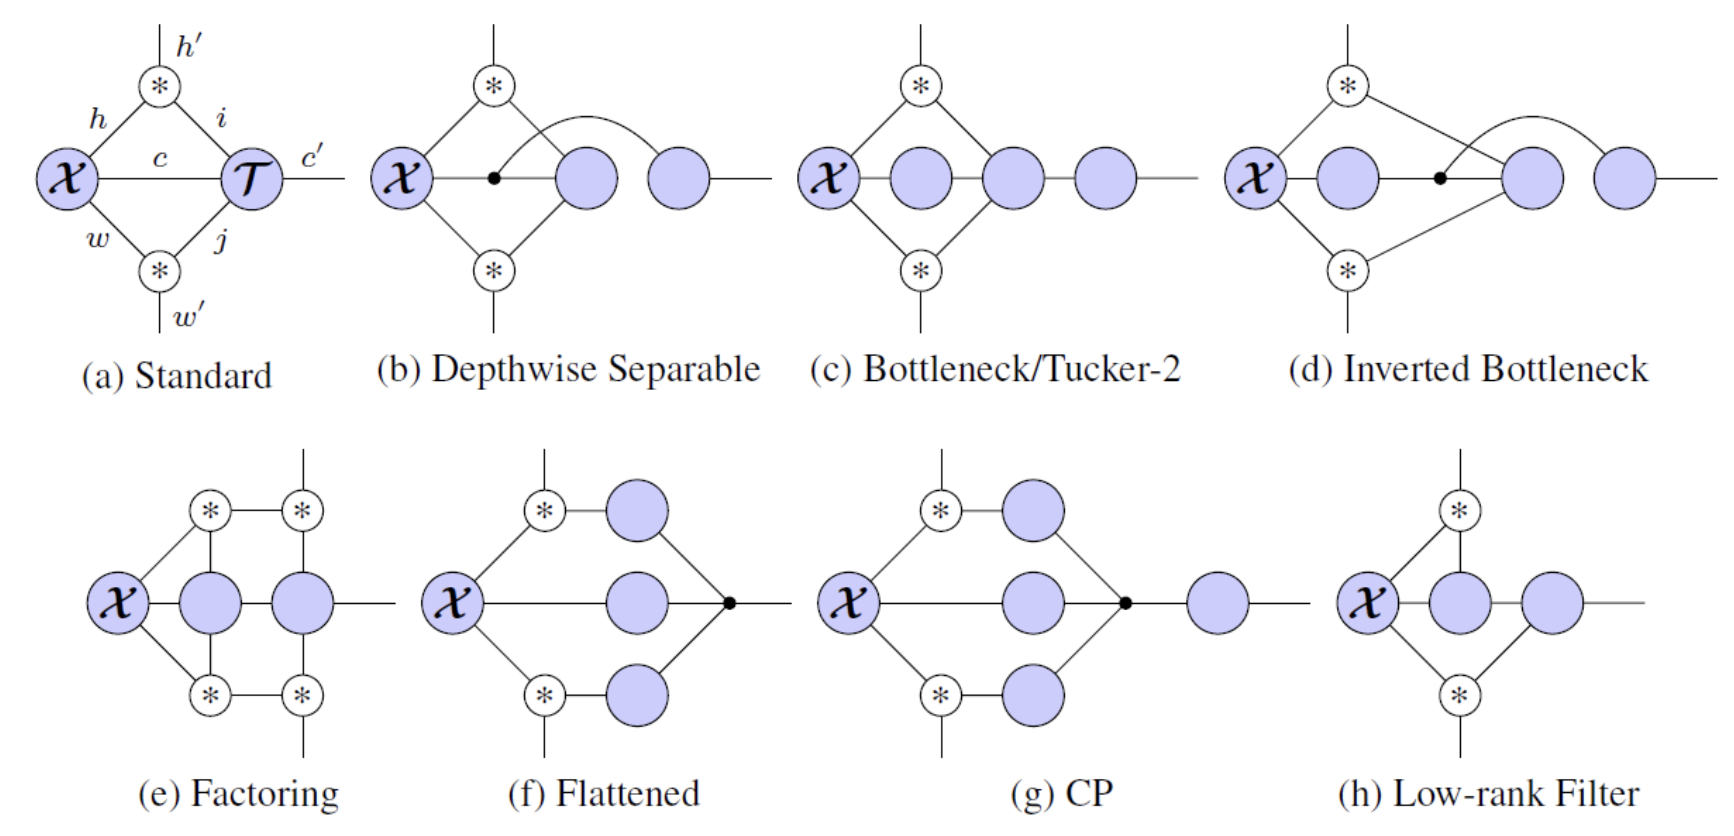 For high prediction performance, CNNs demand huge resources such as model size and FLOPs. To reduce them, a lot of efficient building blocks (e.g. bottleneck layers in ResNet) have been handcrafted. However, there has been no systematic way to understand or generate them. In this study, we propose a graphical model for CNNs based on tensor network and show its wide representability and usefulness for architecture search.